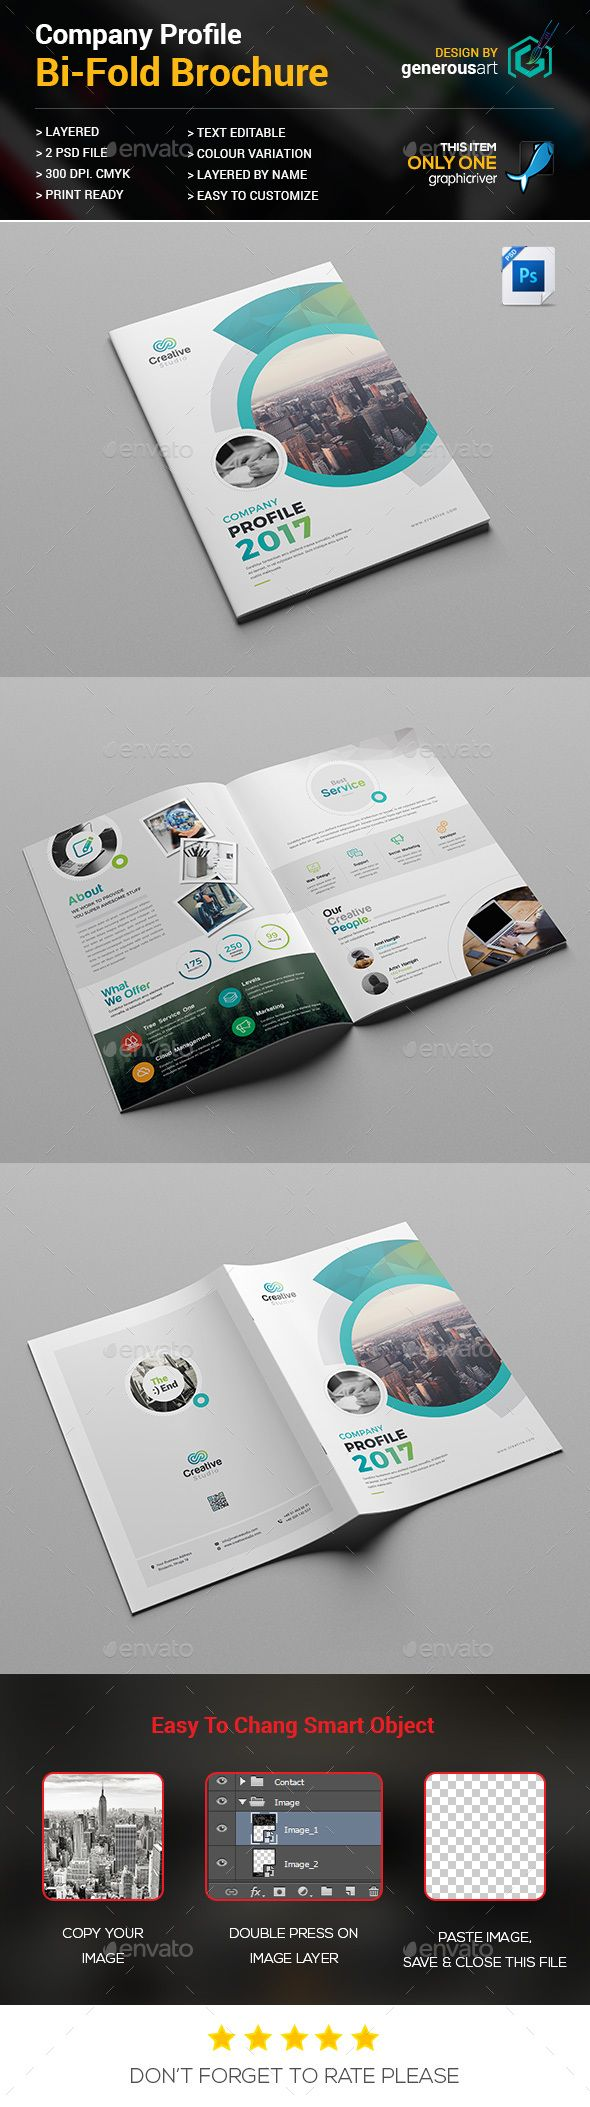 Bifold Brochure Photoshop Psd Template Company Available Here